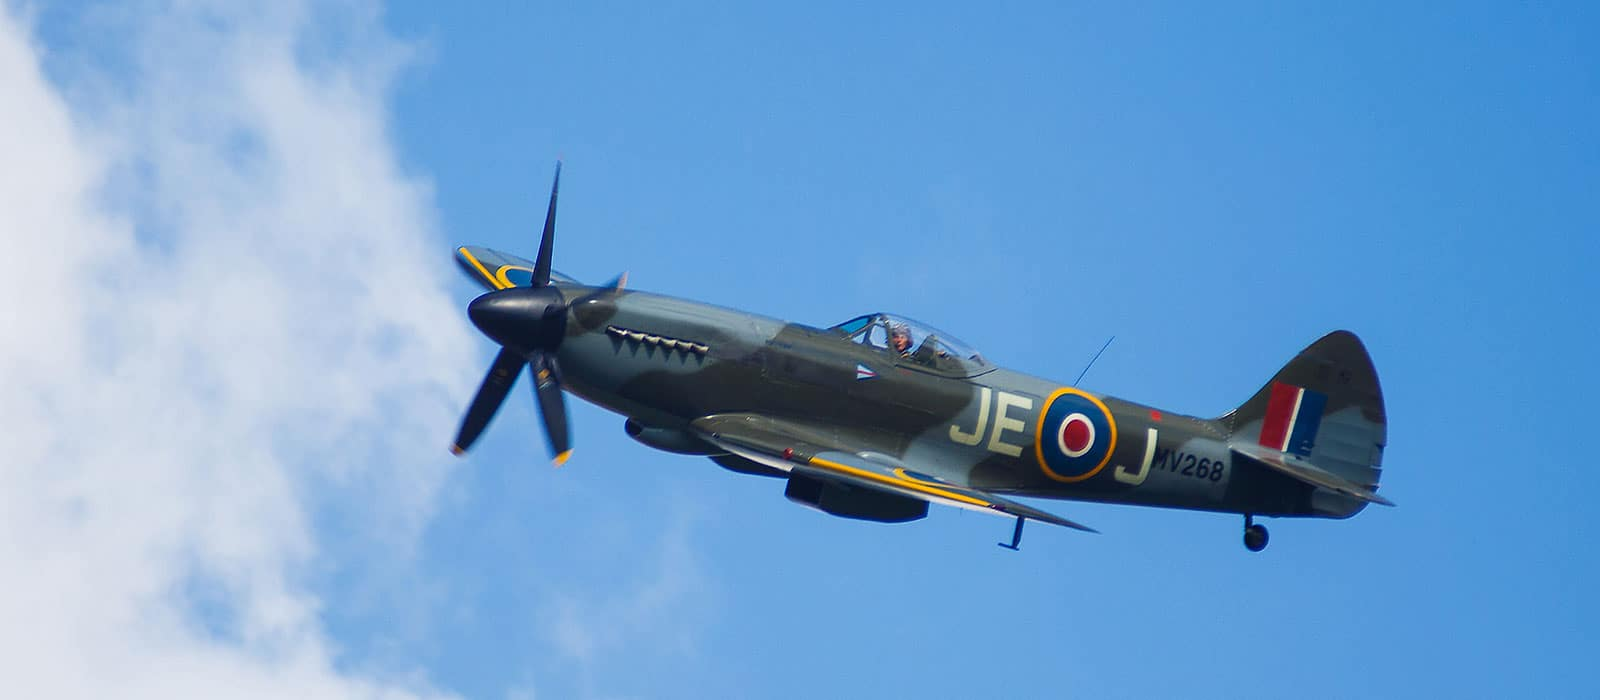 Spitfire wedding flypast: an unexpected wedding guest